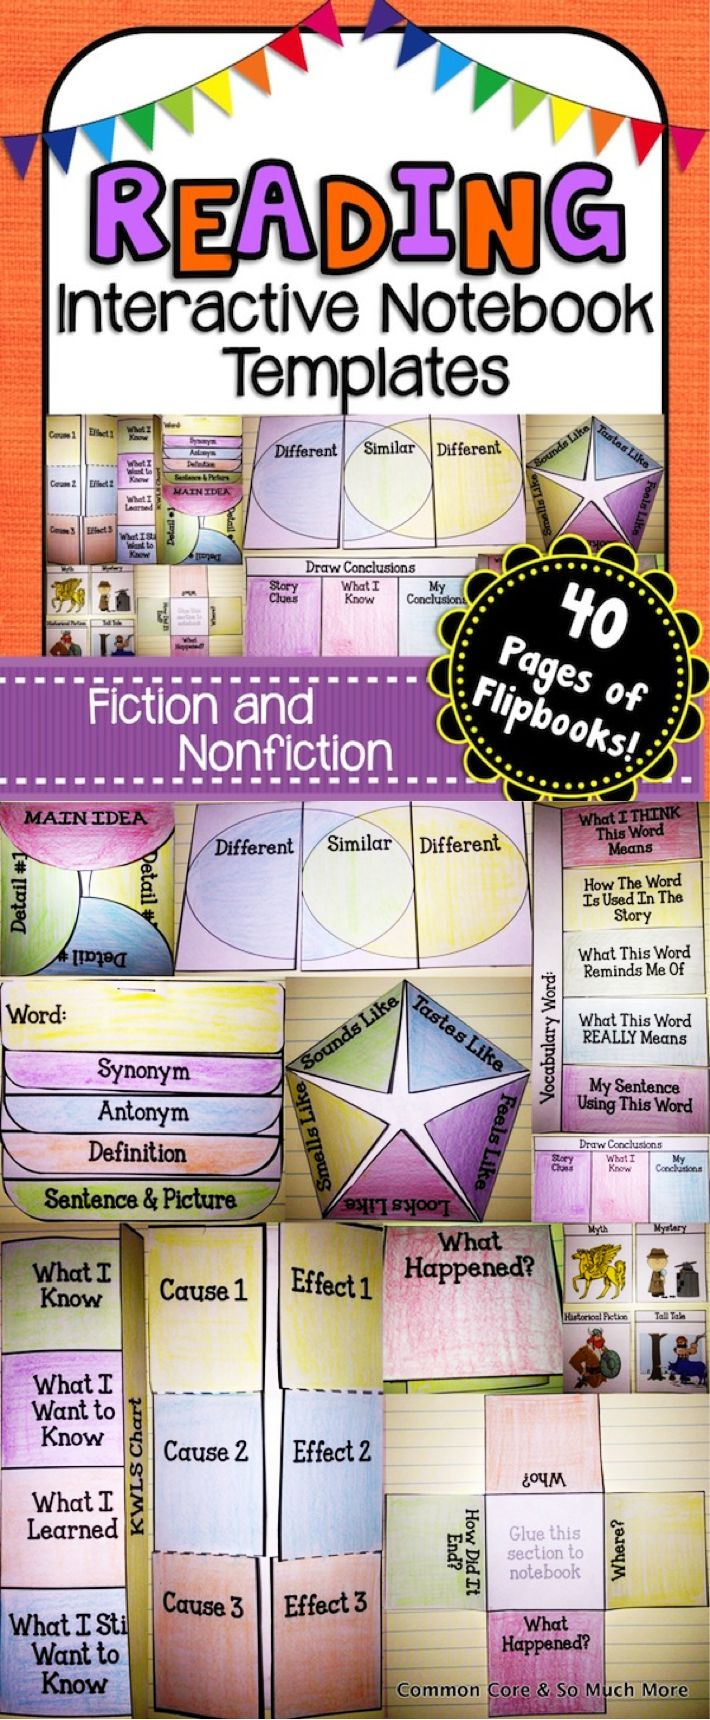 Reading Interactive Notebook Templates - Fiction and Nonfiction $